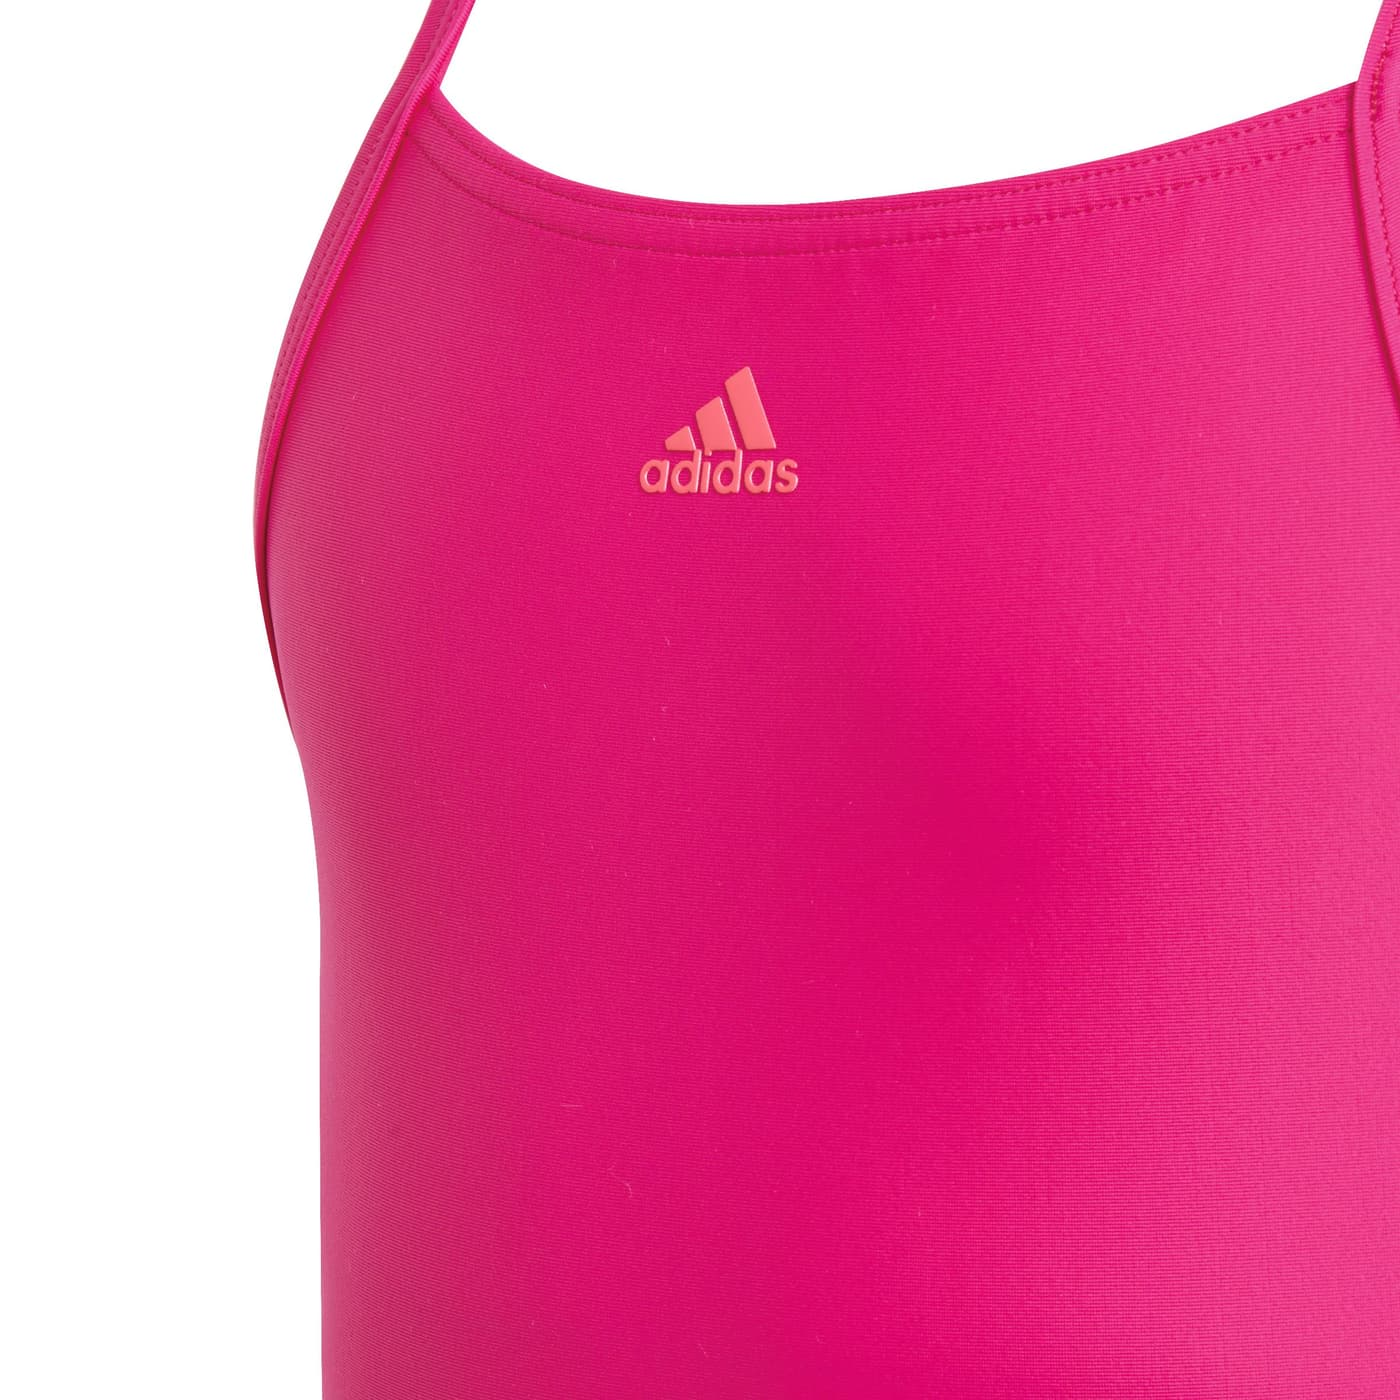 Adidas fitness training suit colorblock 3 stripes Mädchen Badeanzug